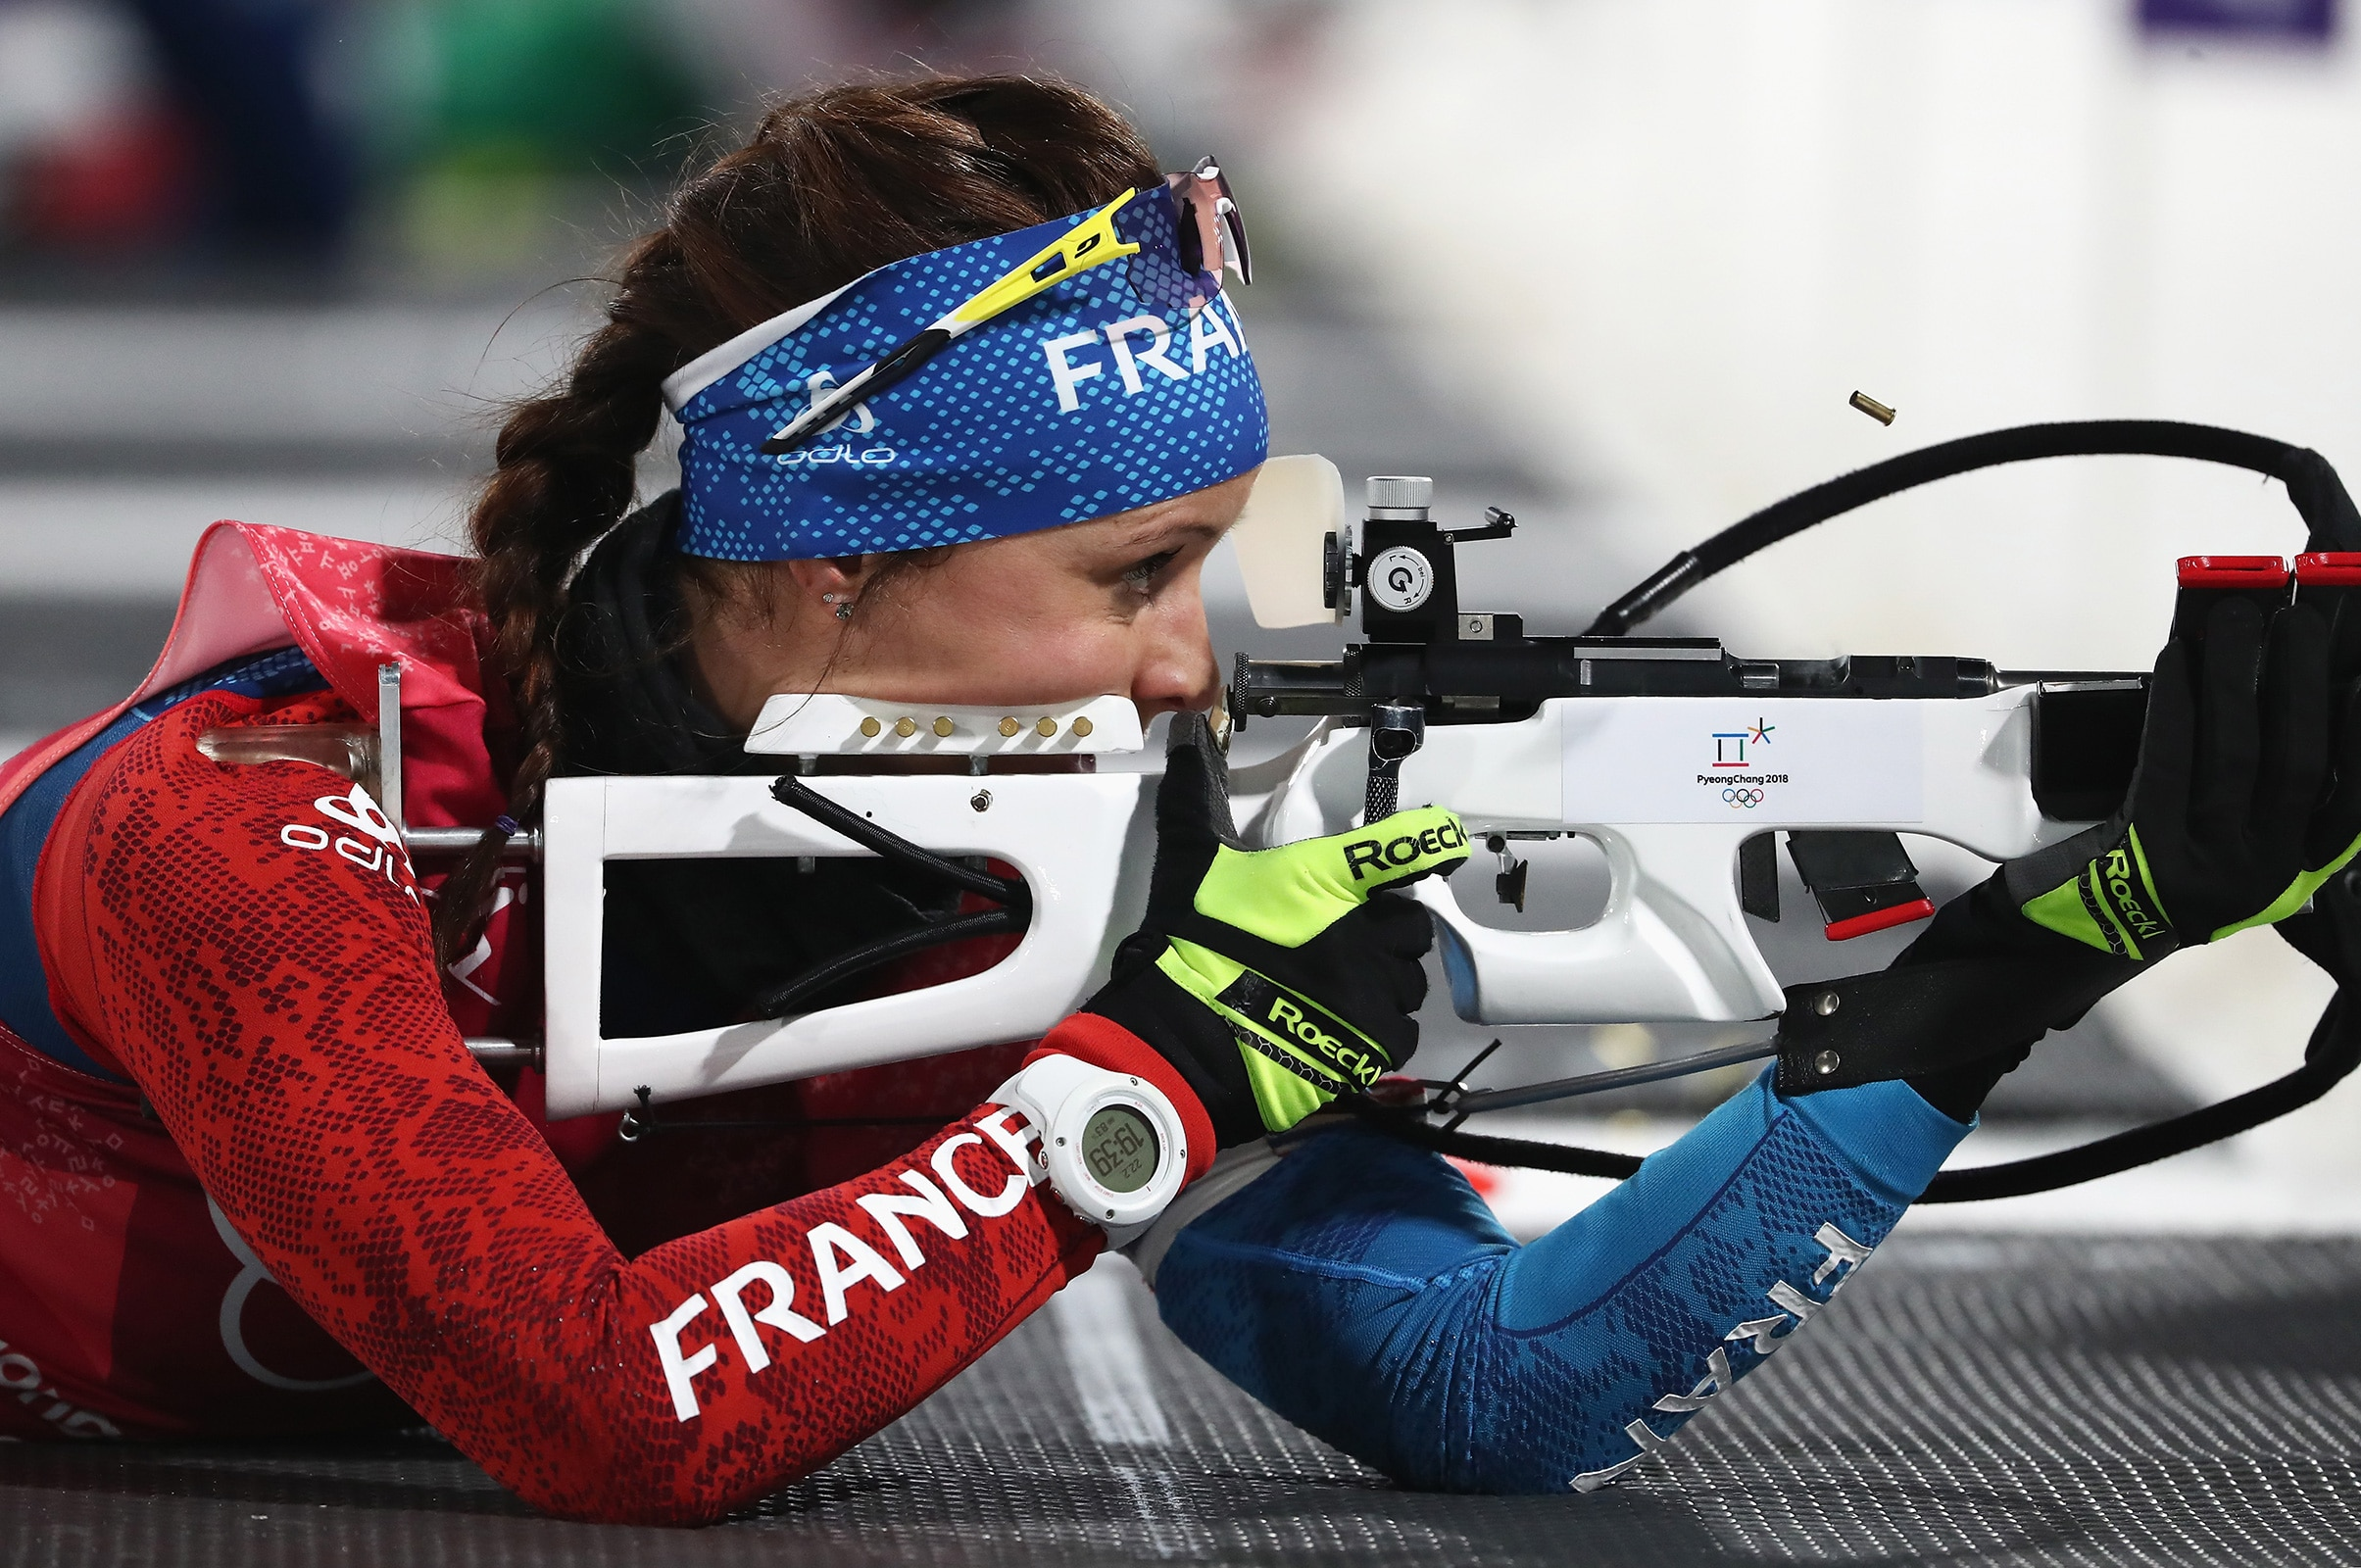 Biathlon - Women's 4x6km Relay